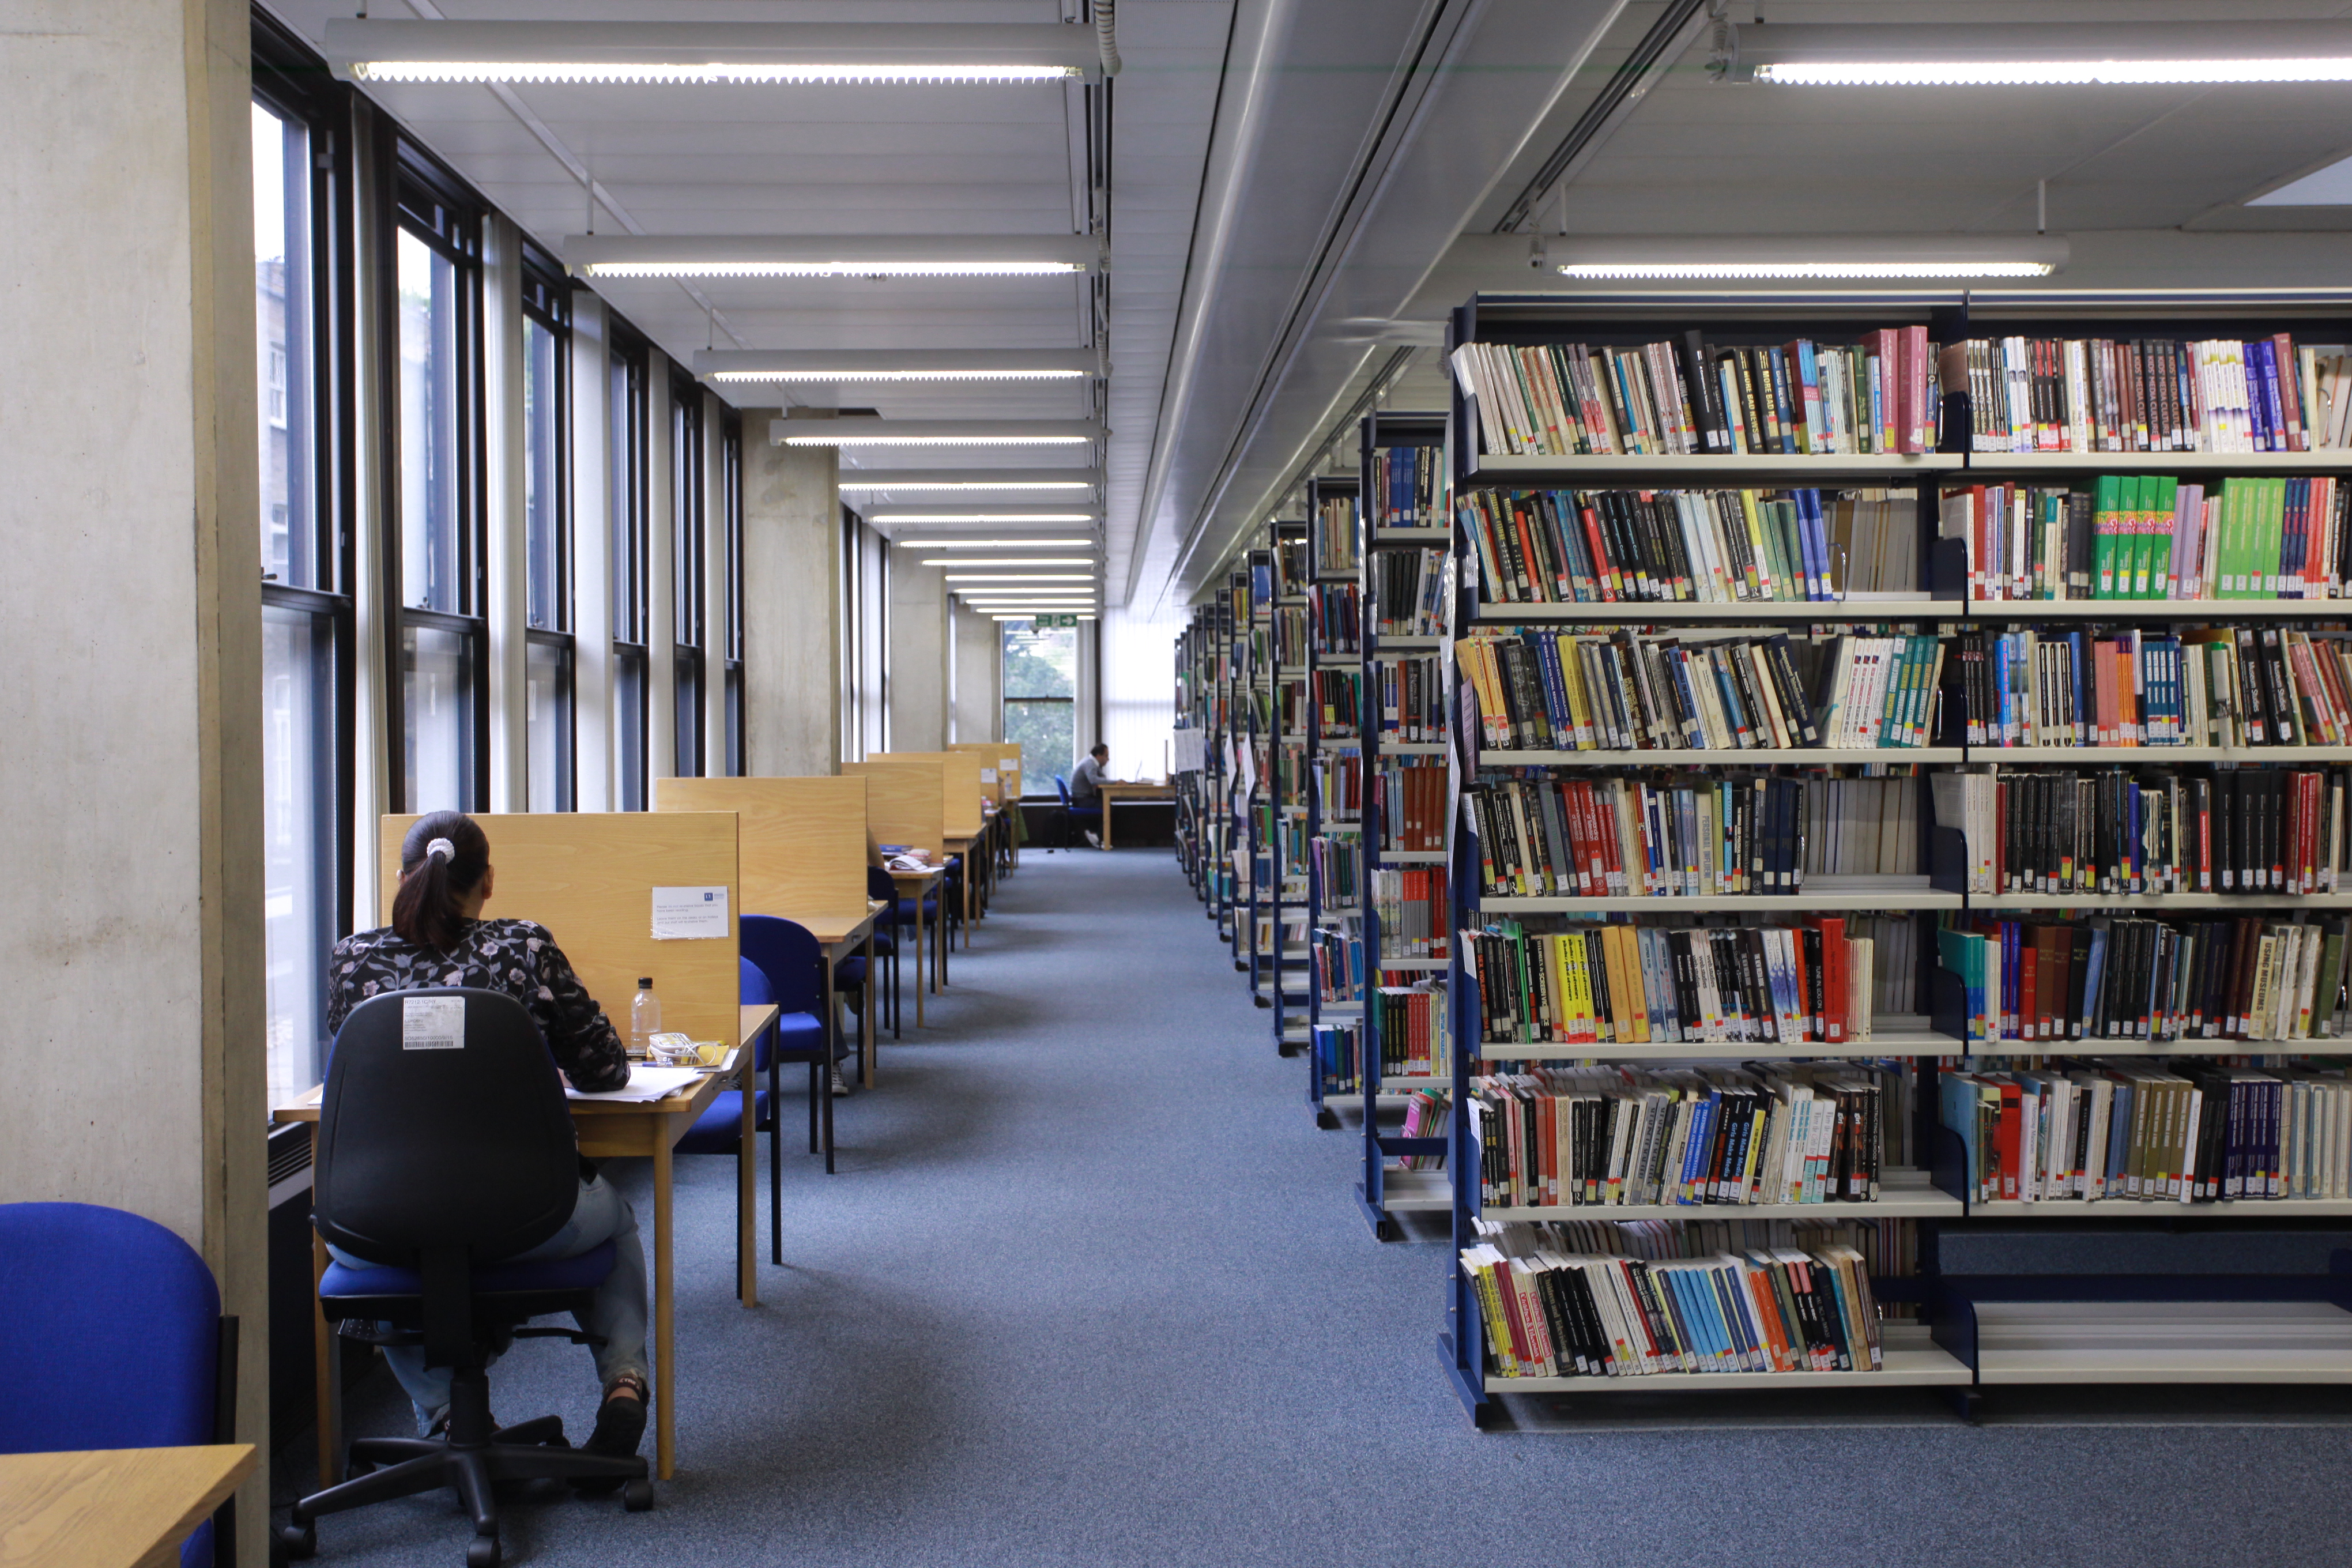 picture of student working on level 5 of the Library